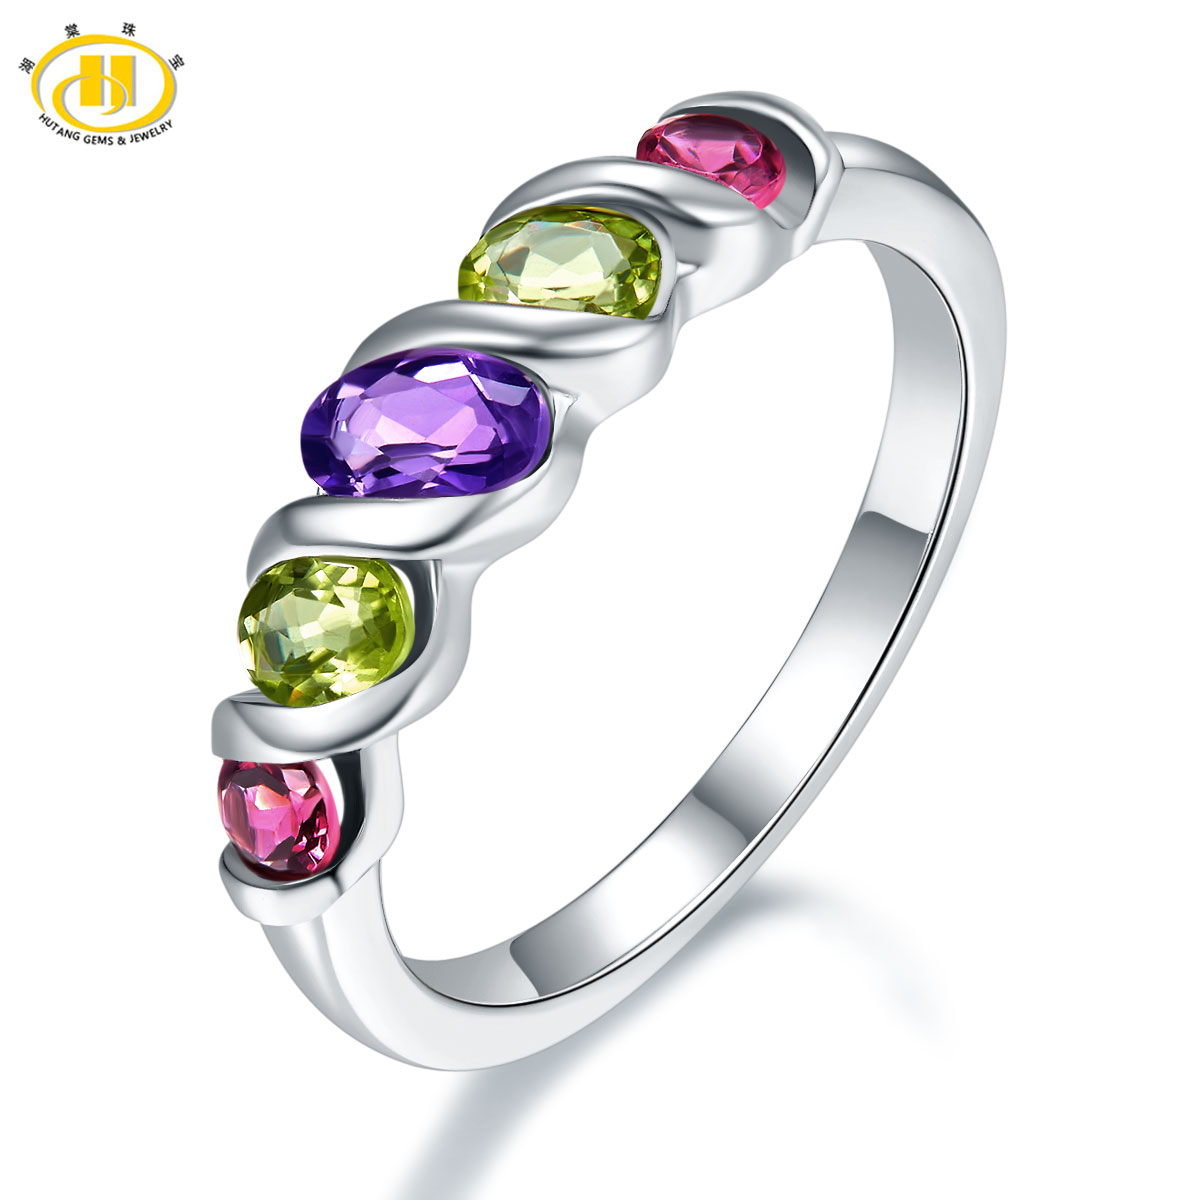 Hutang Natural Multi-color Gemstone Ring Solid 925 Sterling Silver Rings Amethyst Peridot Rhodolite Fine Jewelry For Women Gift покрывало arloni самотканное 225 х 270 см arlткп 682 3